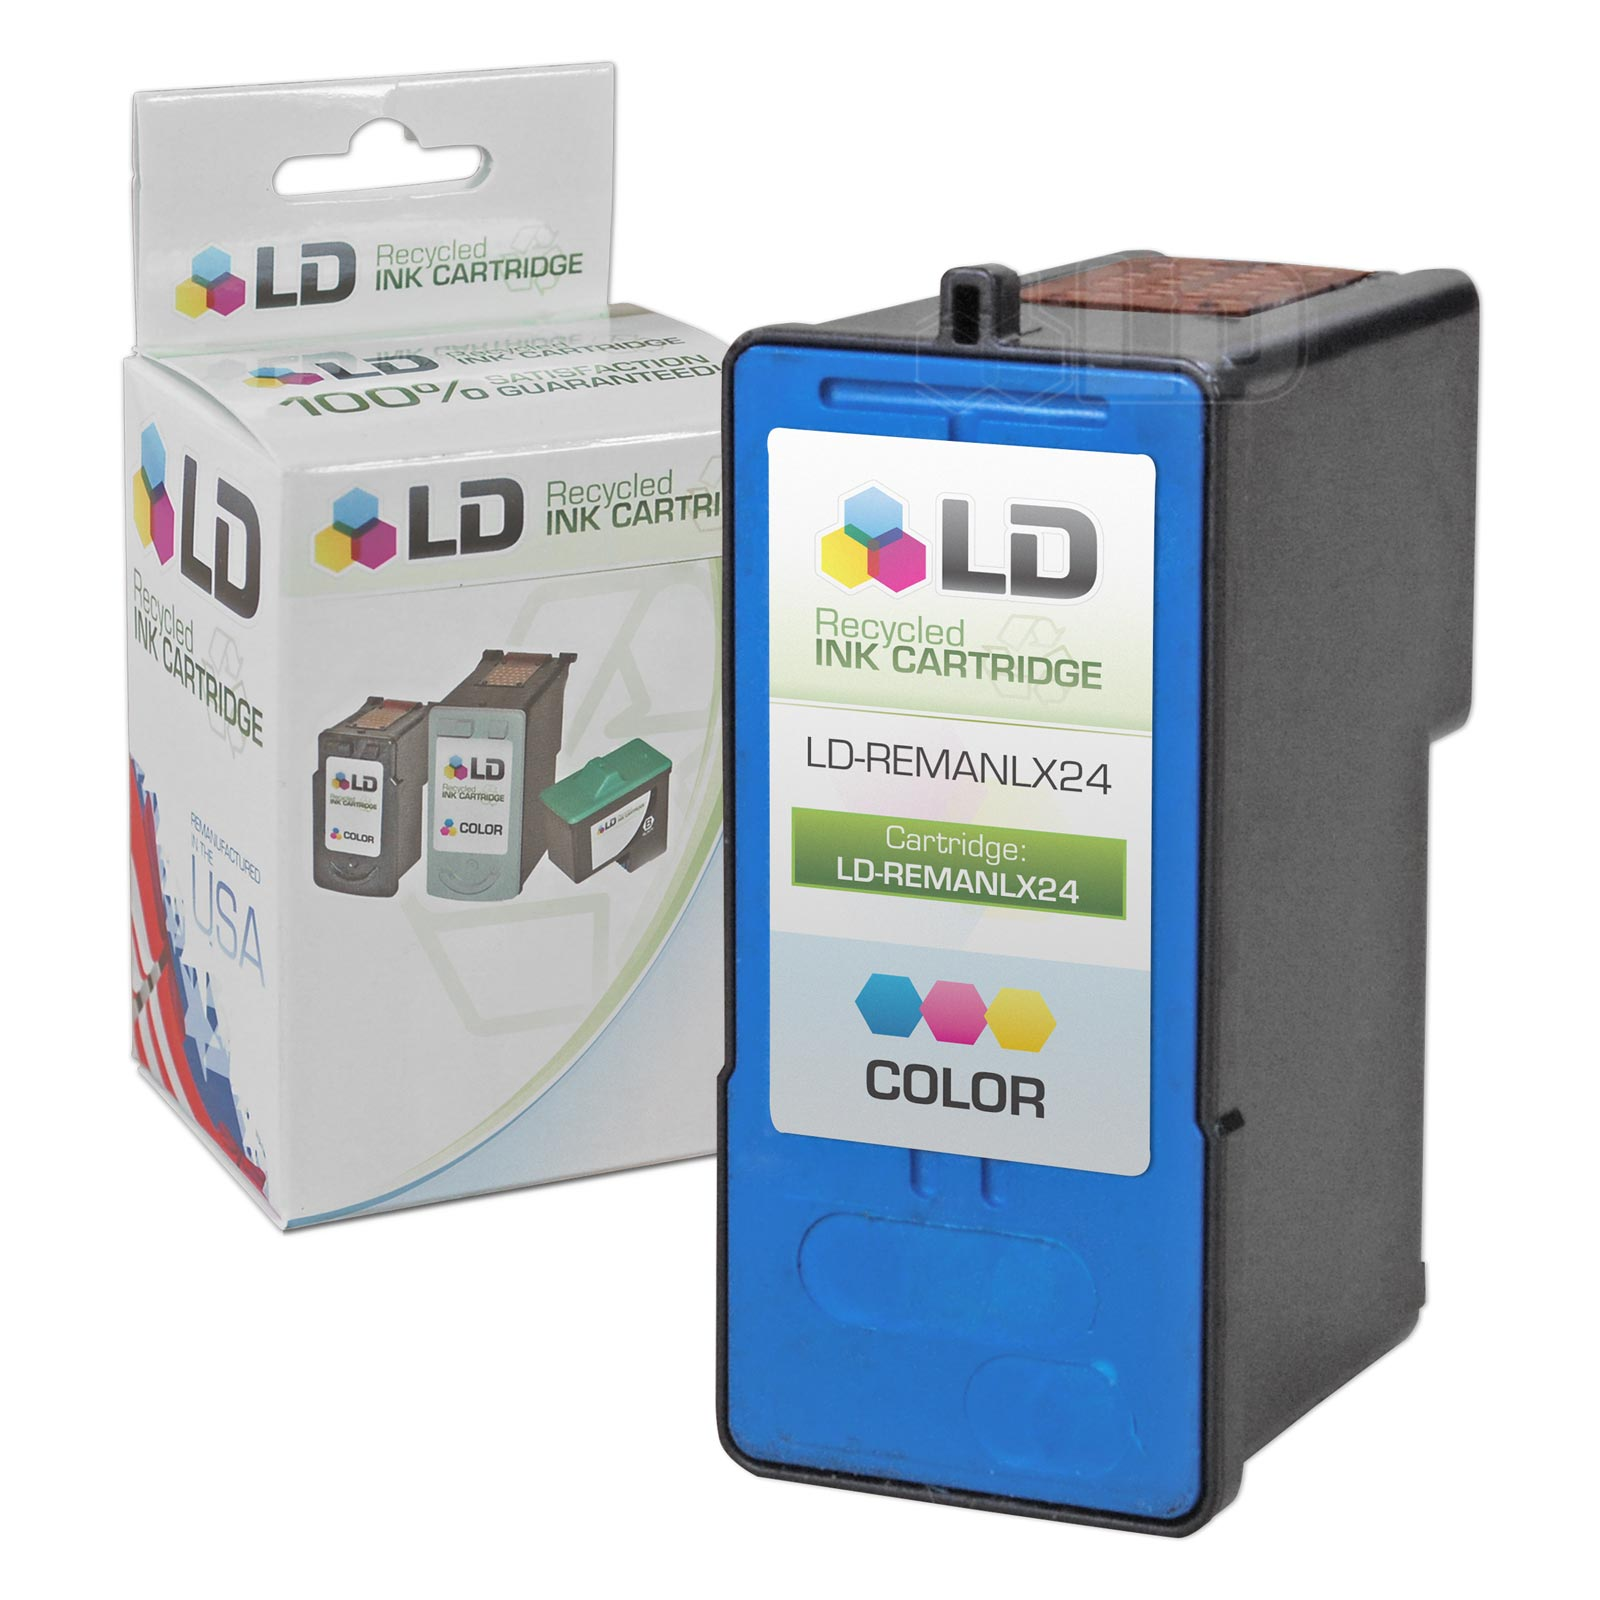 LD Remanufactured Replacement for Lexmark 18C1524 / #24 Color Inkjet Cartridge for use in Lexmark X3430, X3530, X3550,